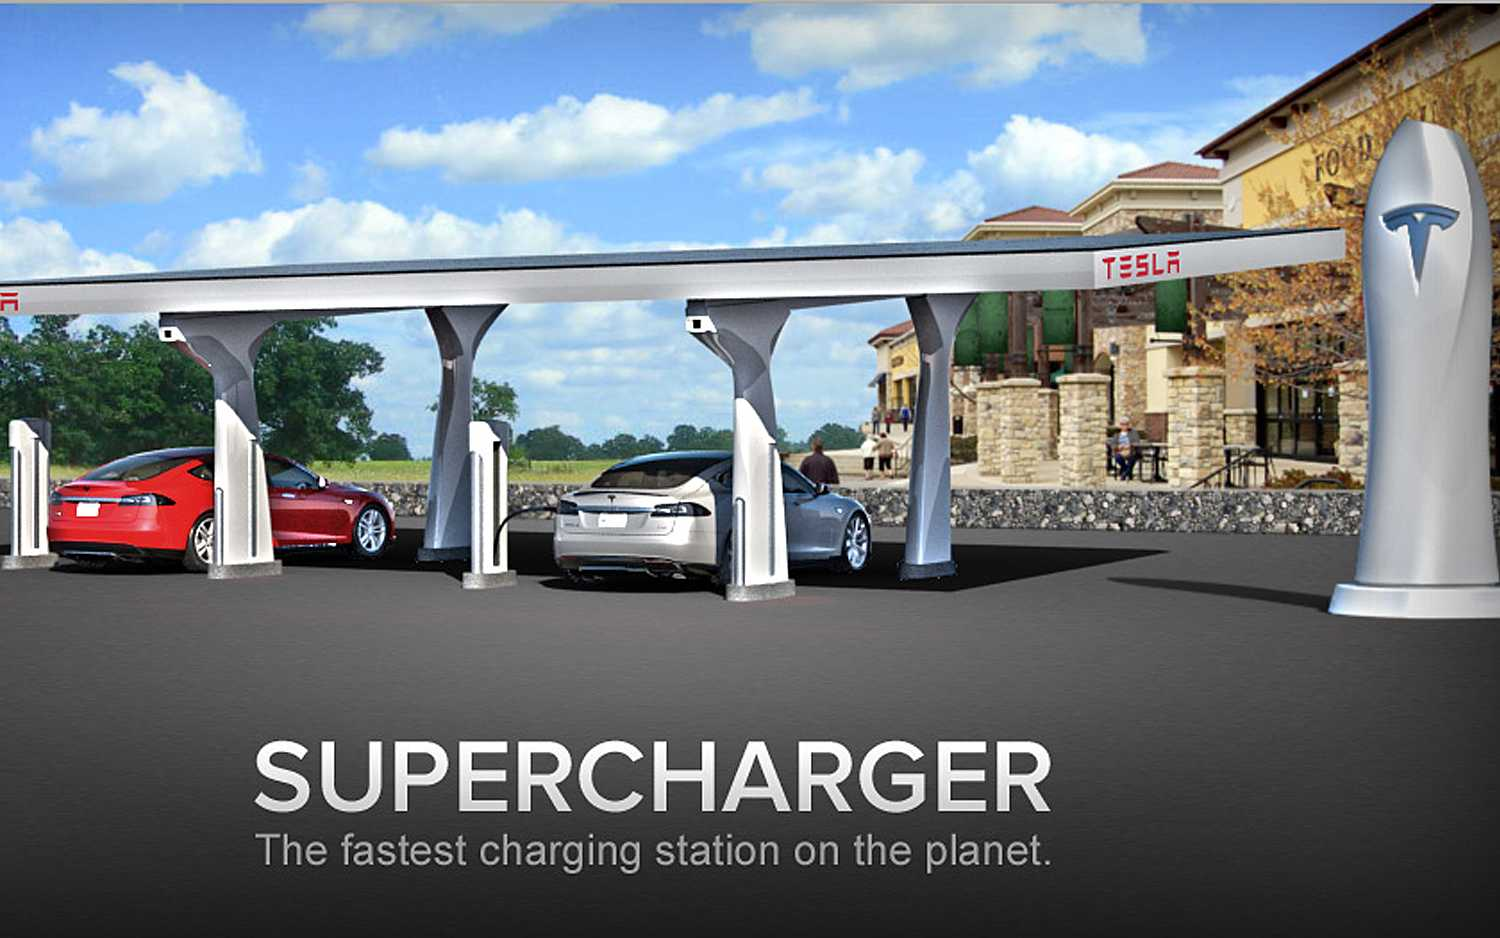 Wiring Diagram Electrical Car Charging Stations Chevy Harness For Tesla Model S Motors Upcoming In New York Will Facilitate Chinese Electric Vehicle